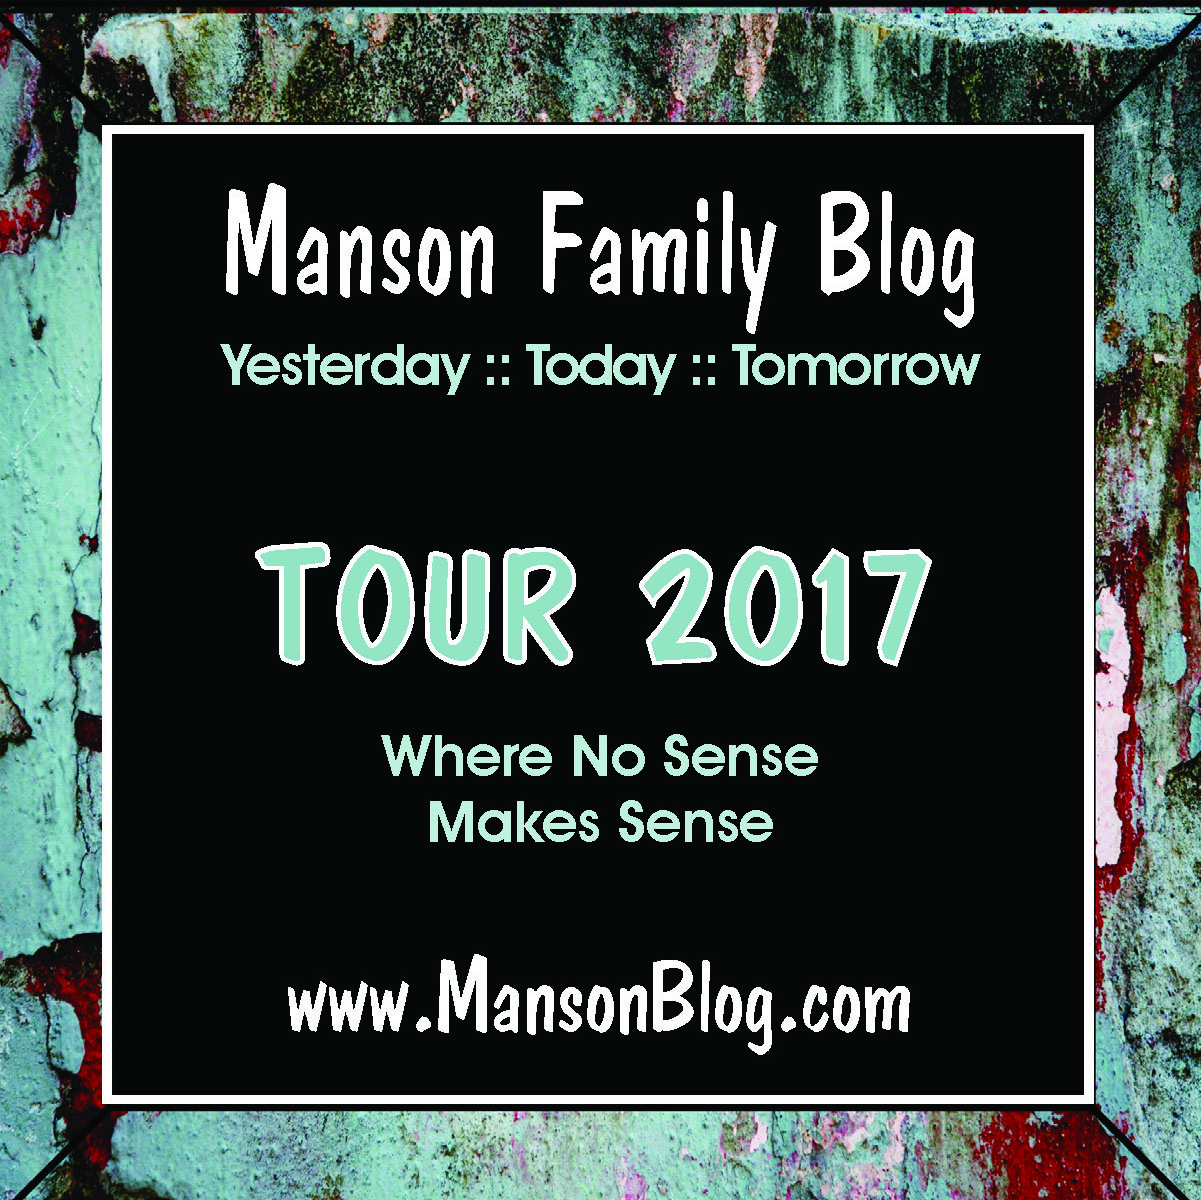 manson family photos manson family today where are they now manson blog tour 2017 click for details